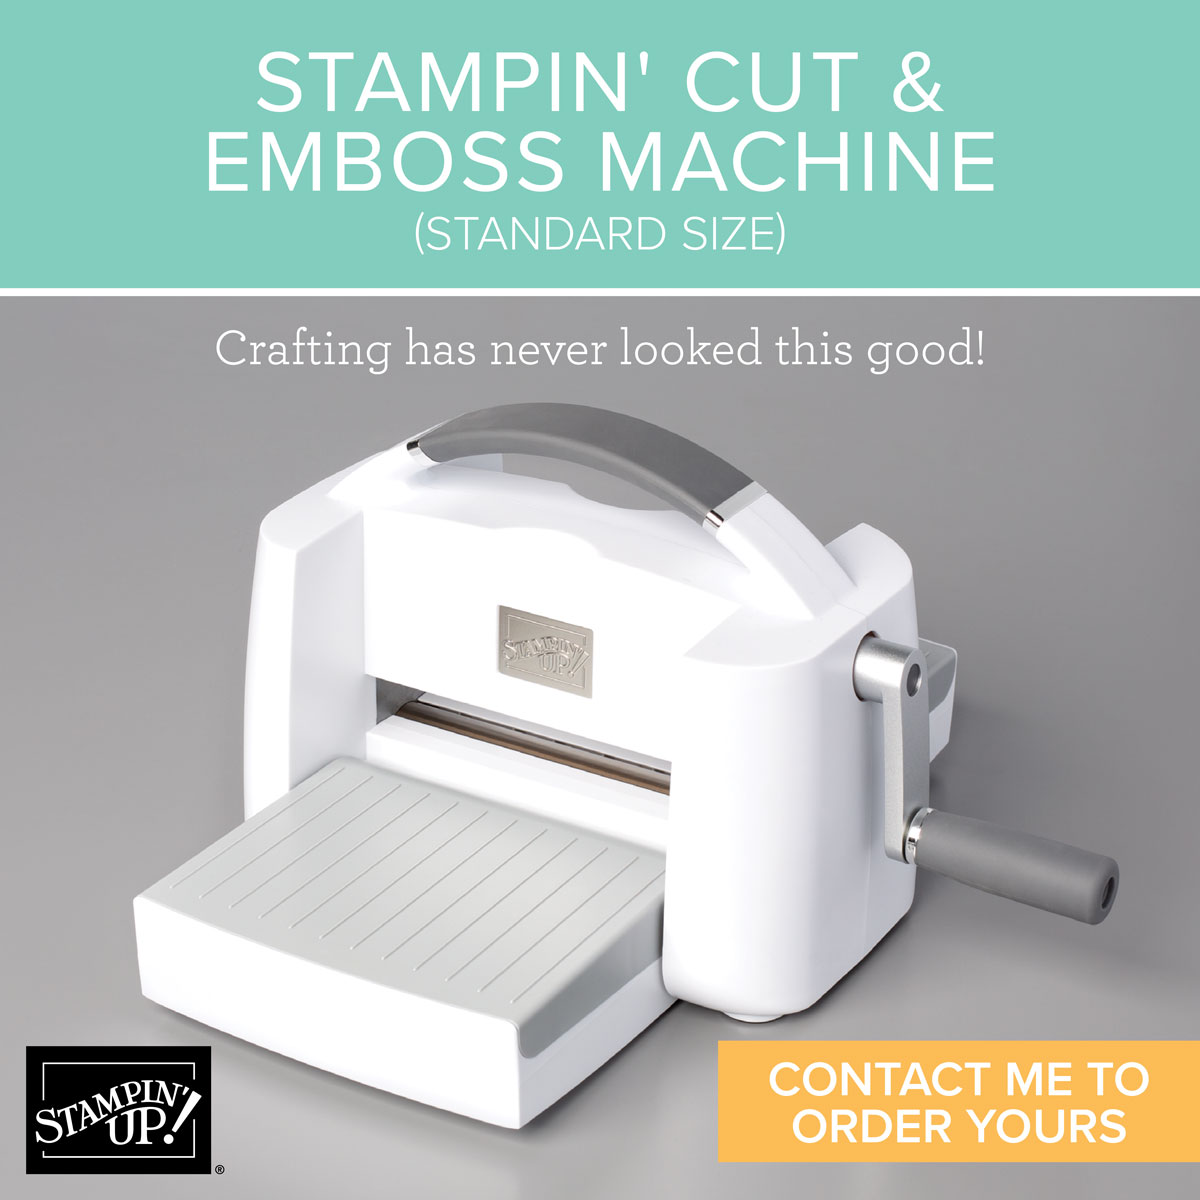 New Cut and Emboss MAchine available to order today! September 1, 2020 - Details on my blog here: https://wp.me/p59VWq-bri